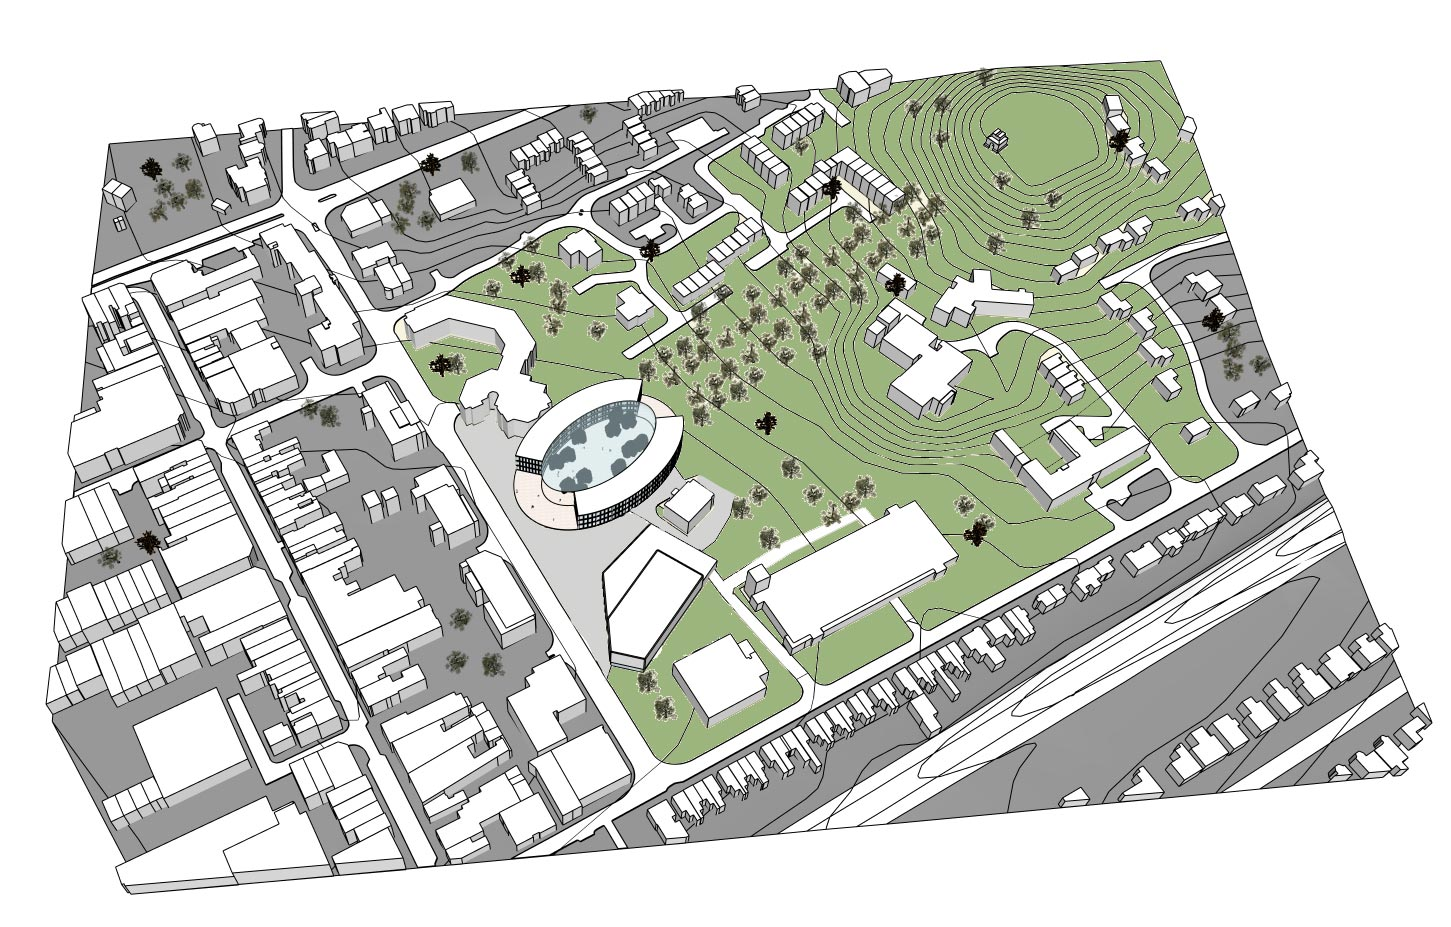 Camberley Cultural Quarter Masterplan - Overview